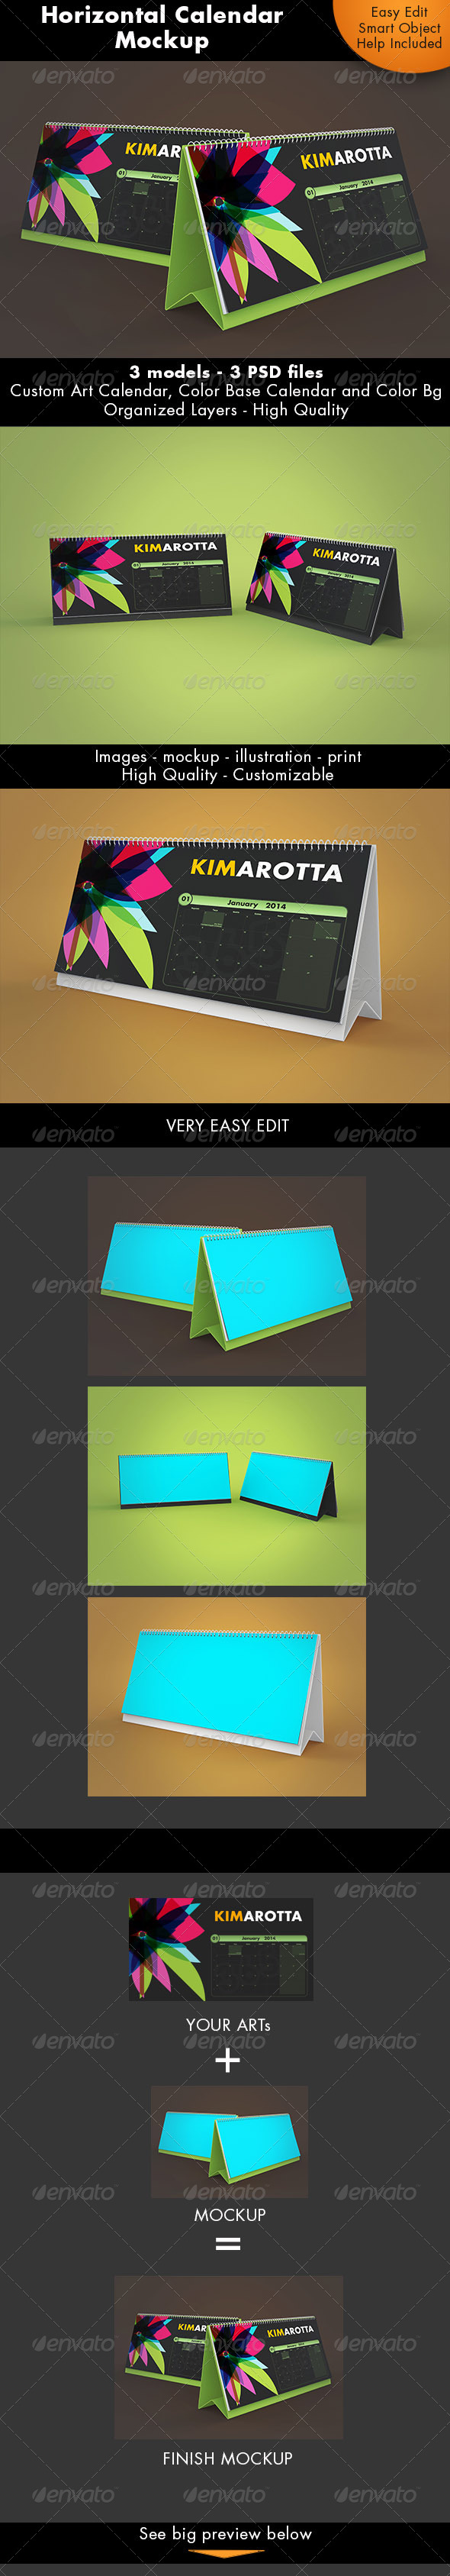 GraphicRiver Horizontal Calendar Desk Mockup 7359269